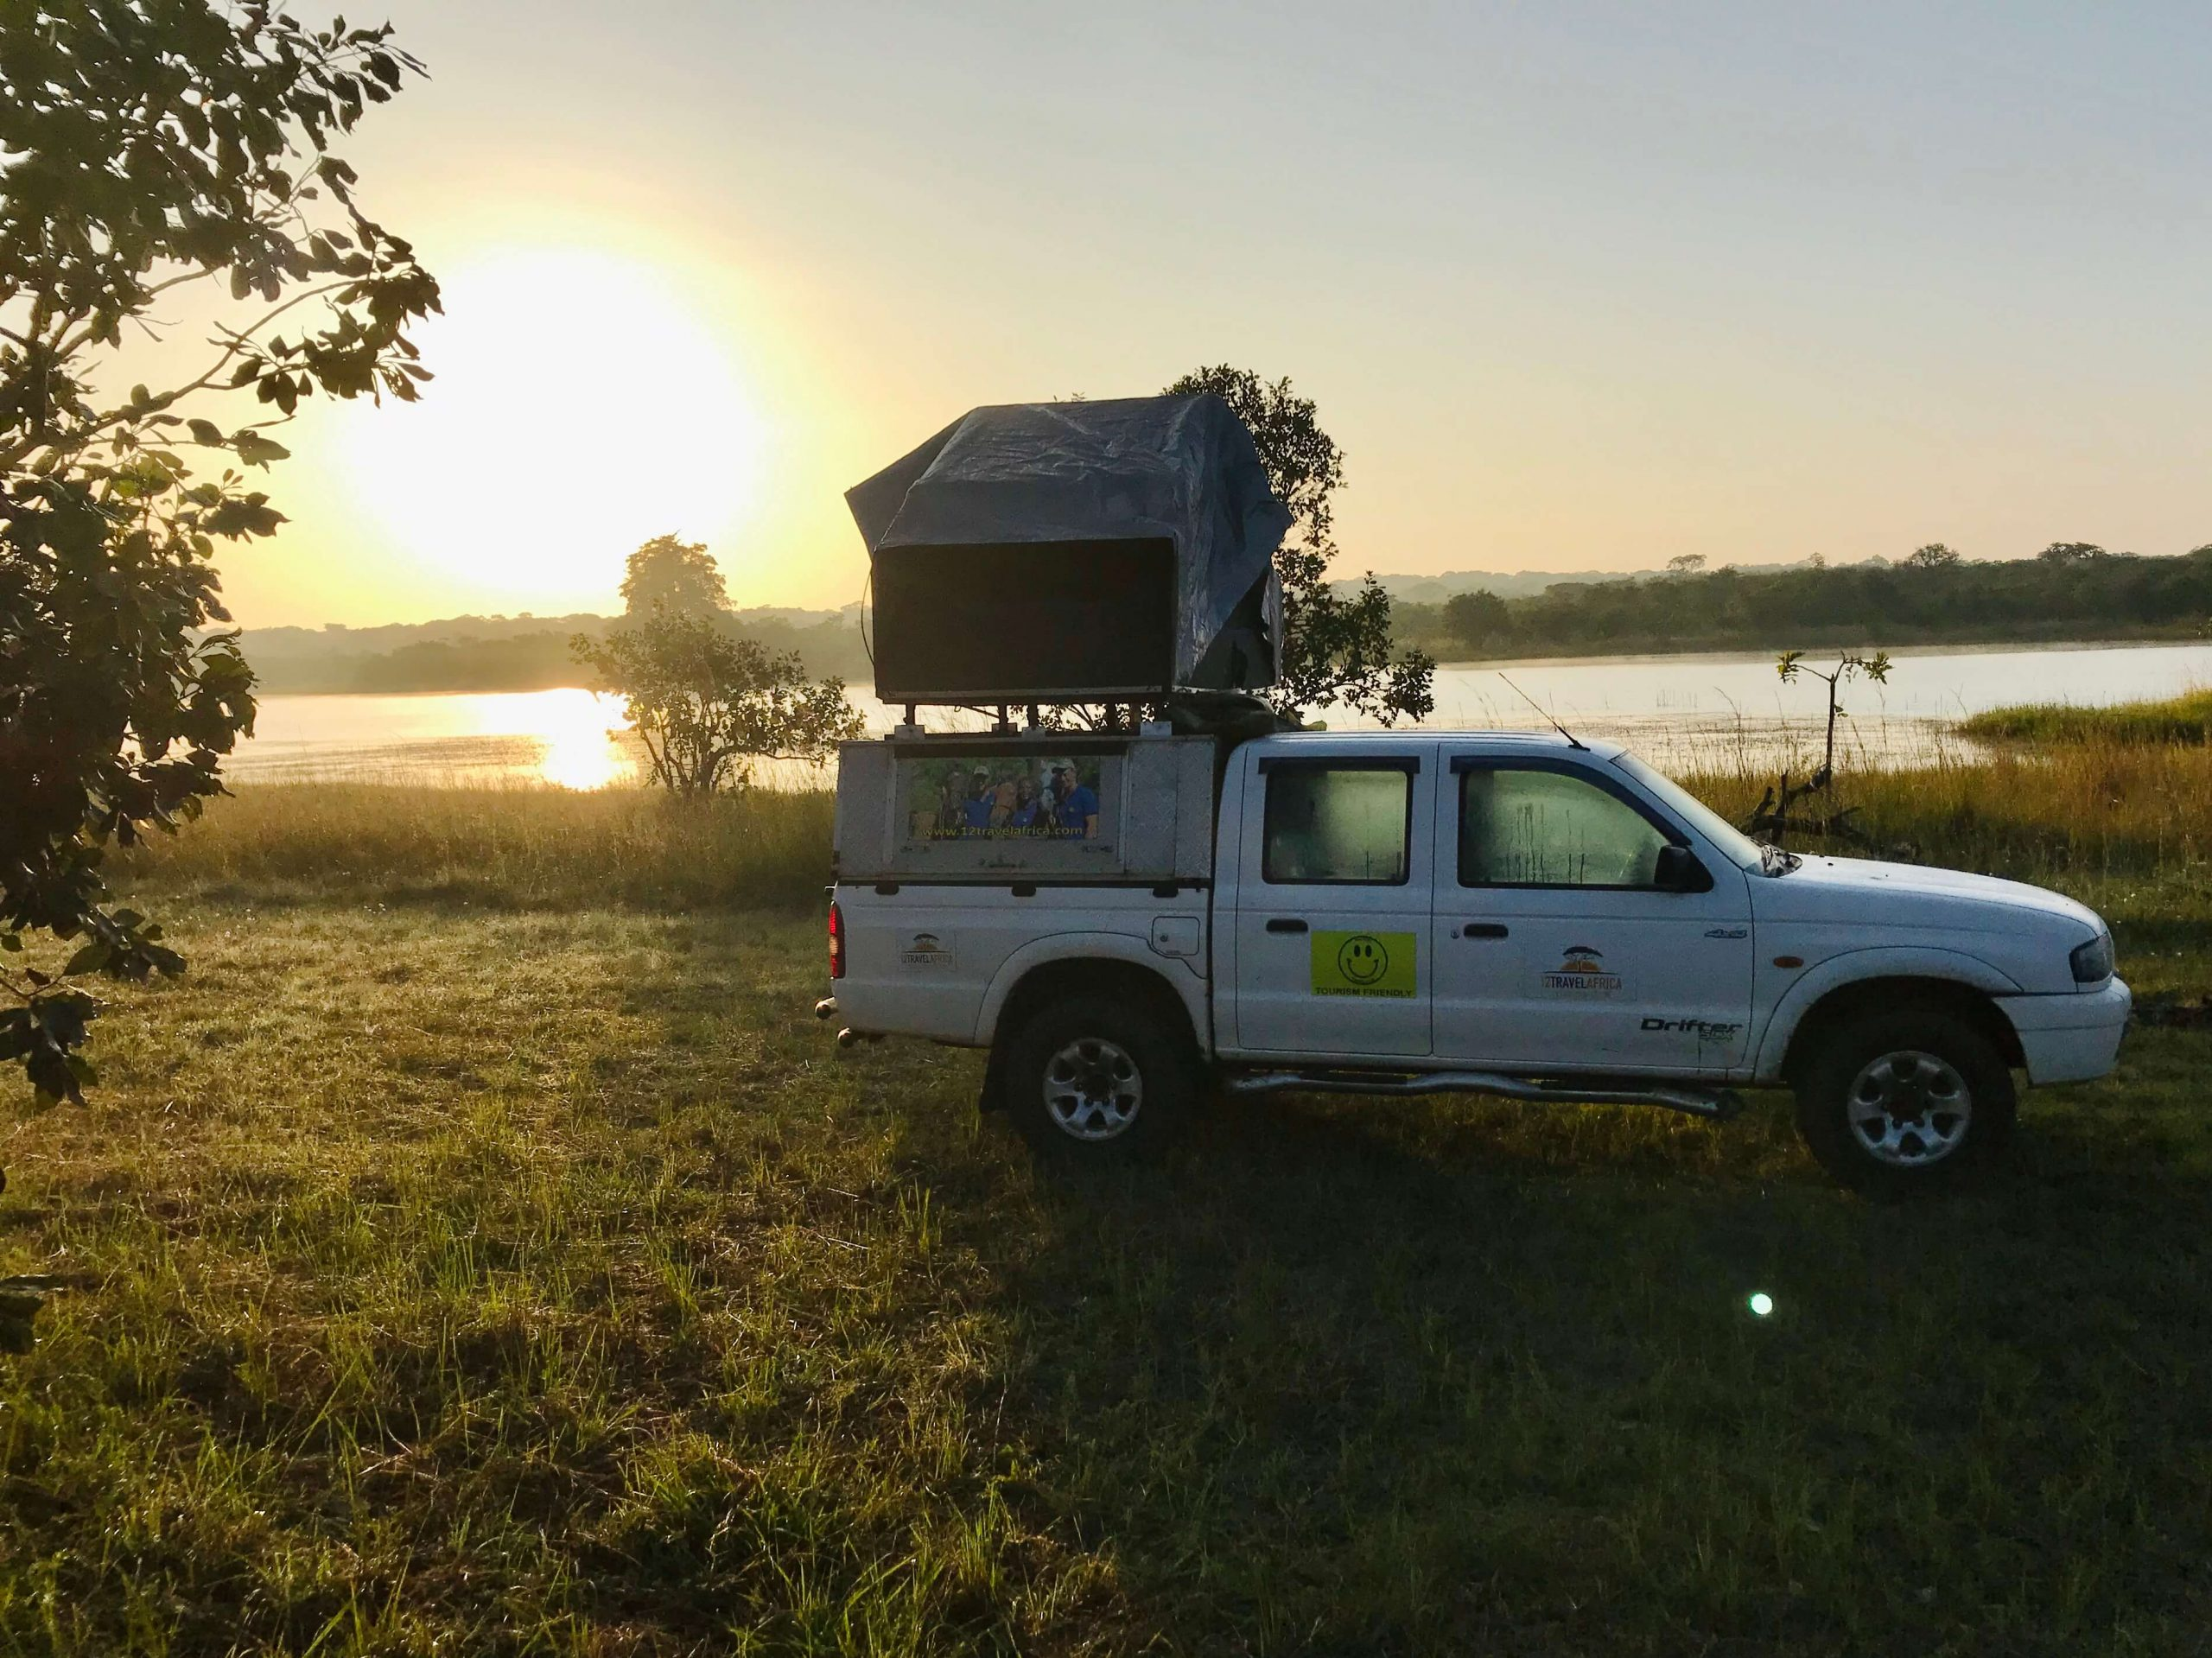 Self-drive in Malawi with a roof tent